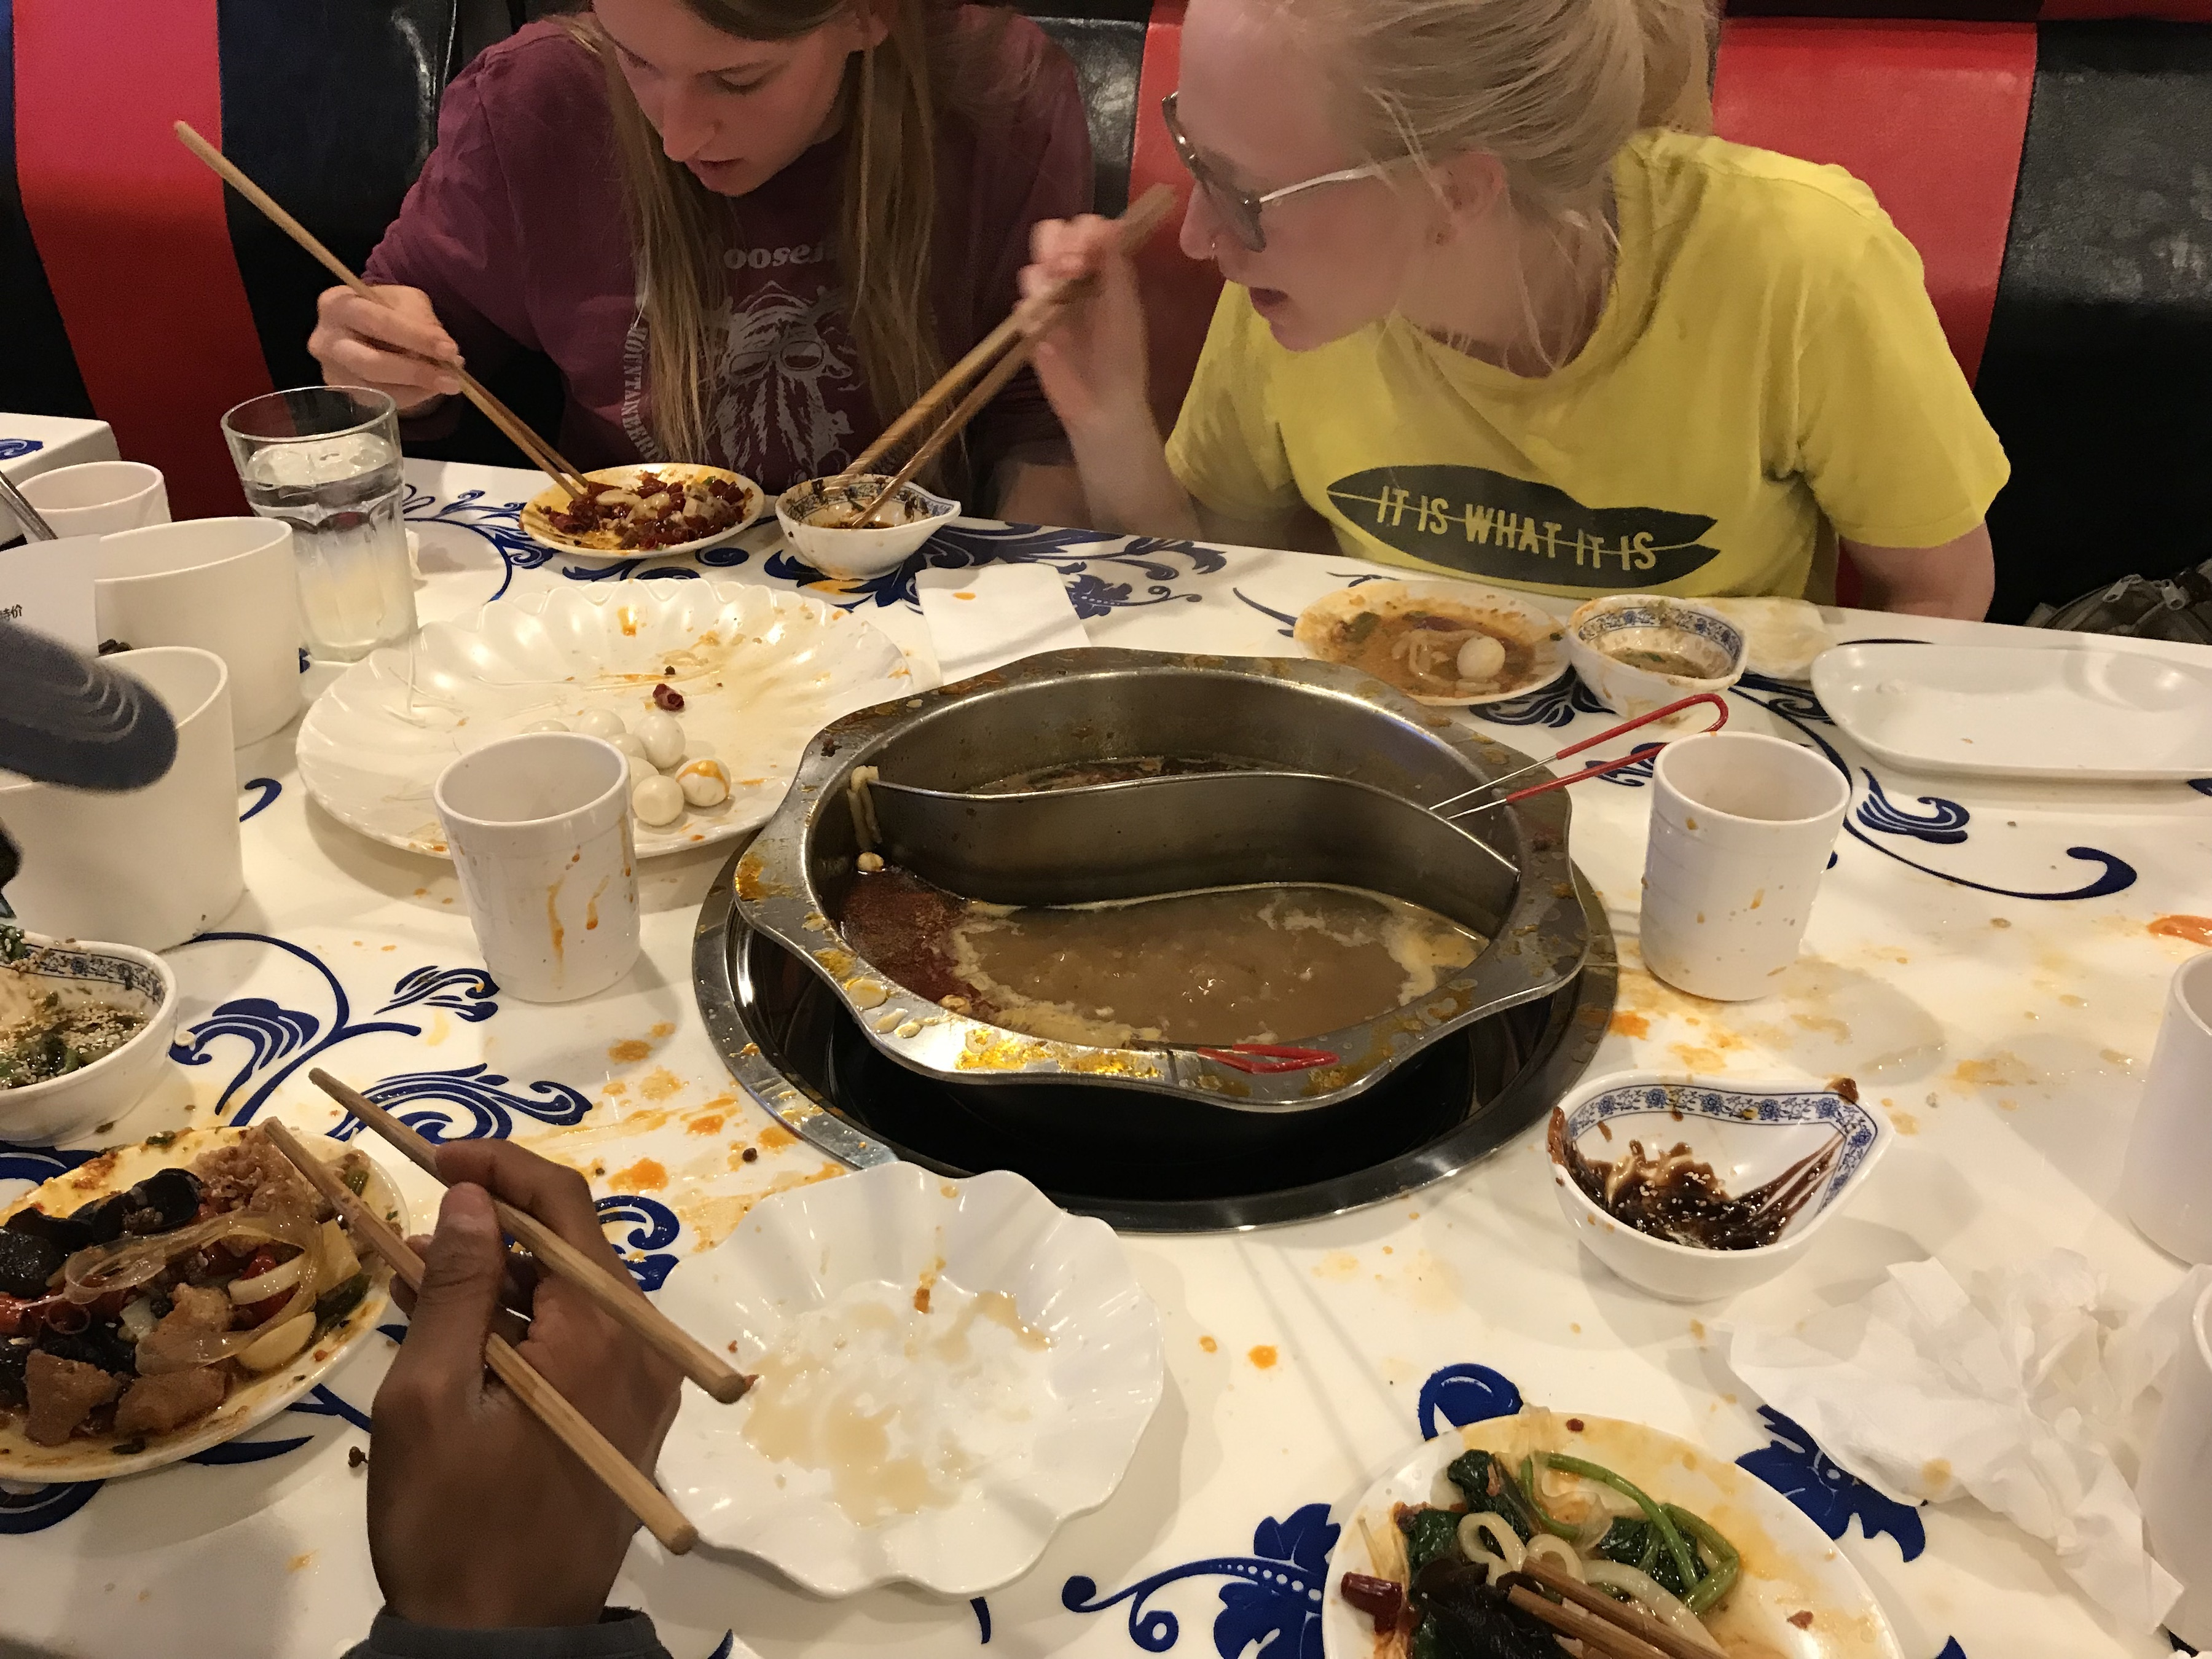 There are several plates on our table at the hot pot restaurant. My friends are picking up their food to eat from the broth.